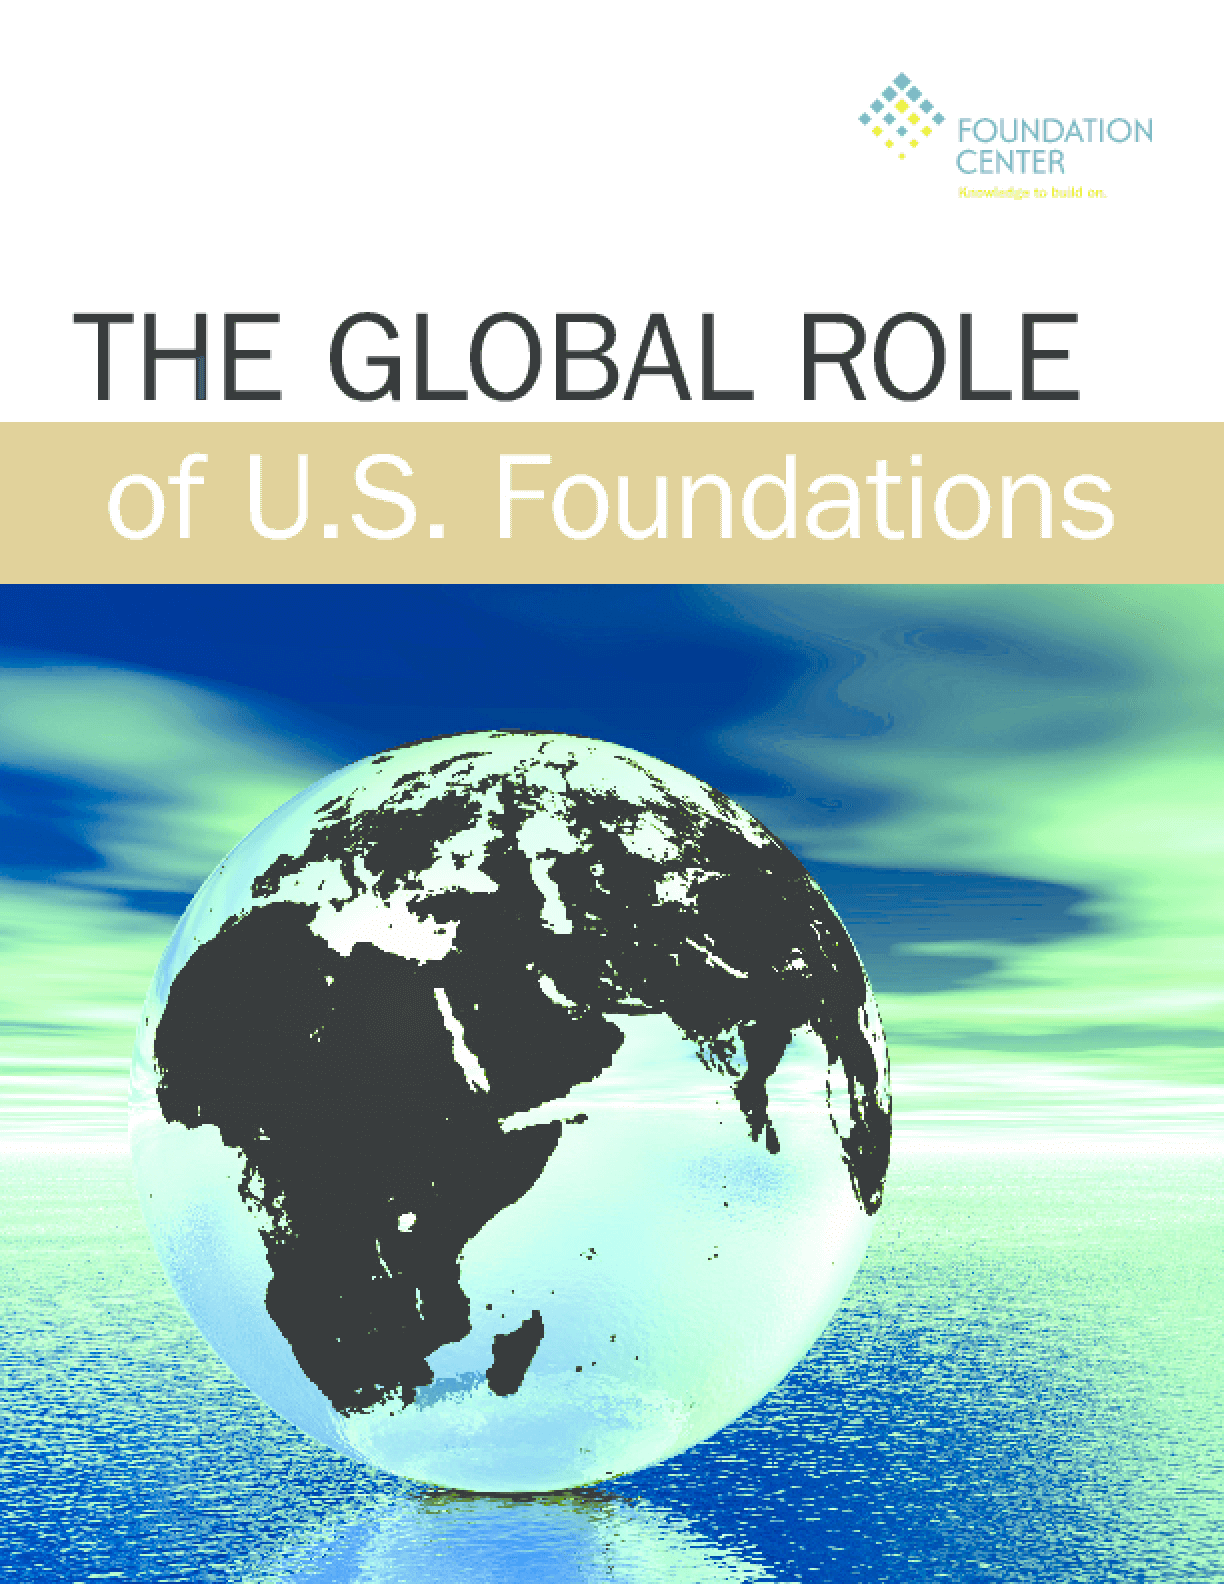 The Global Role of U.S. Foundations